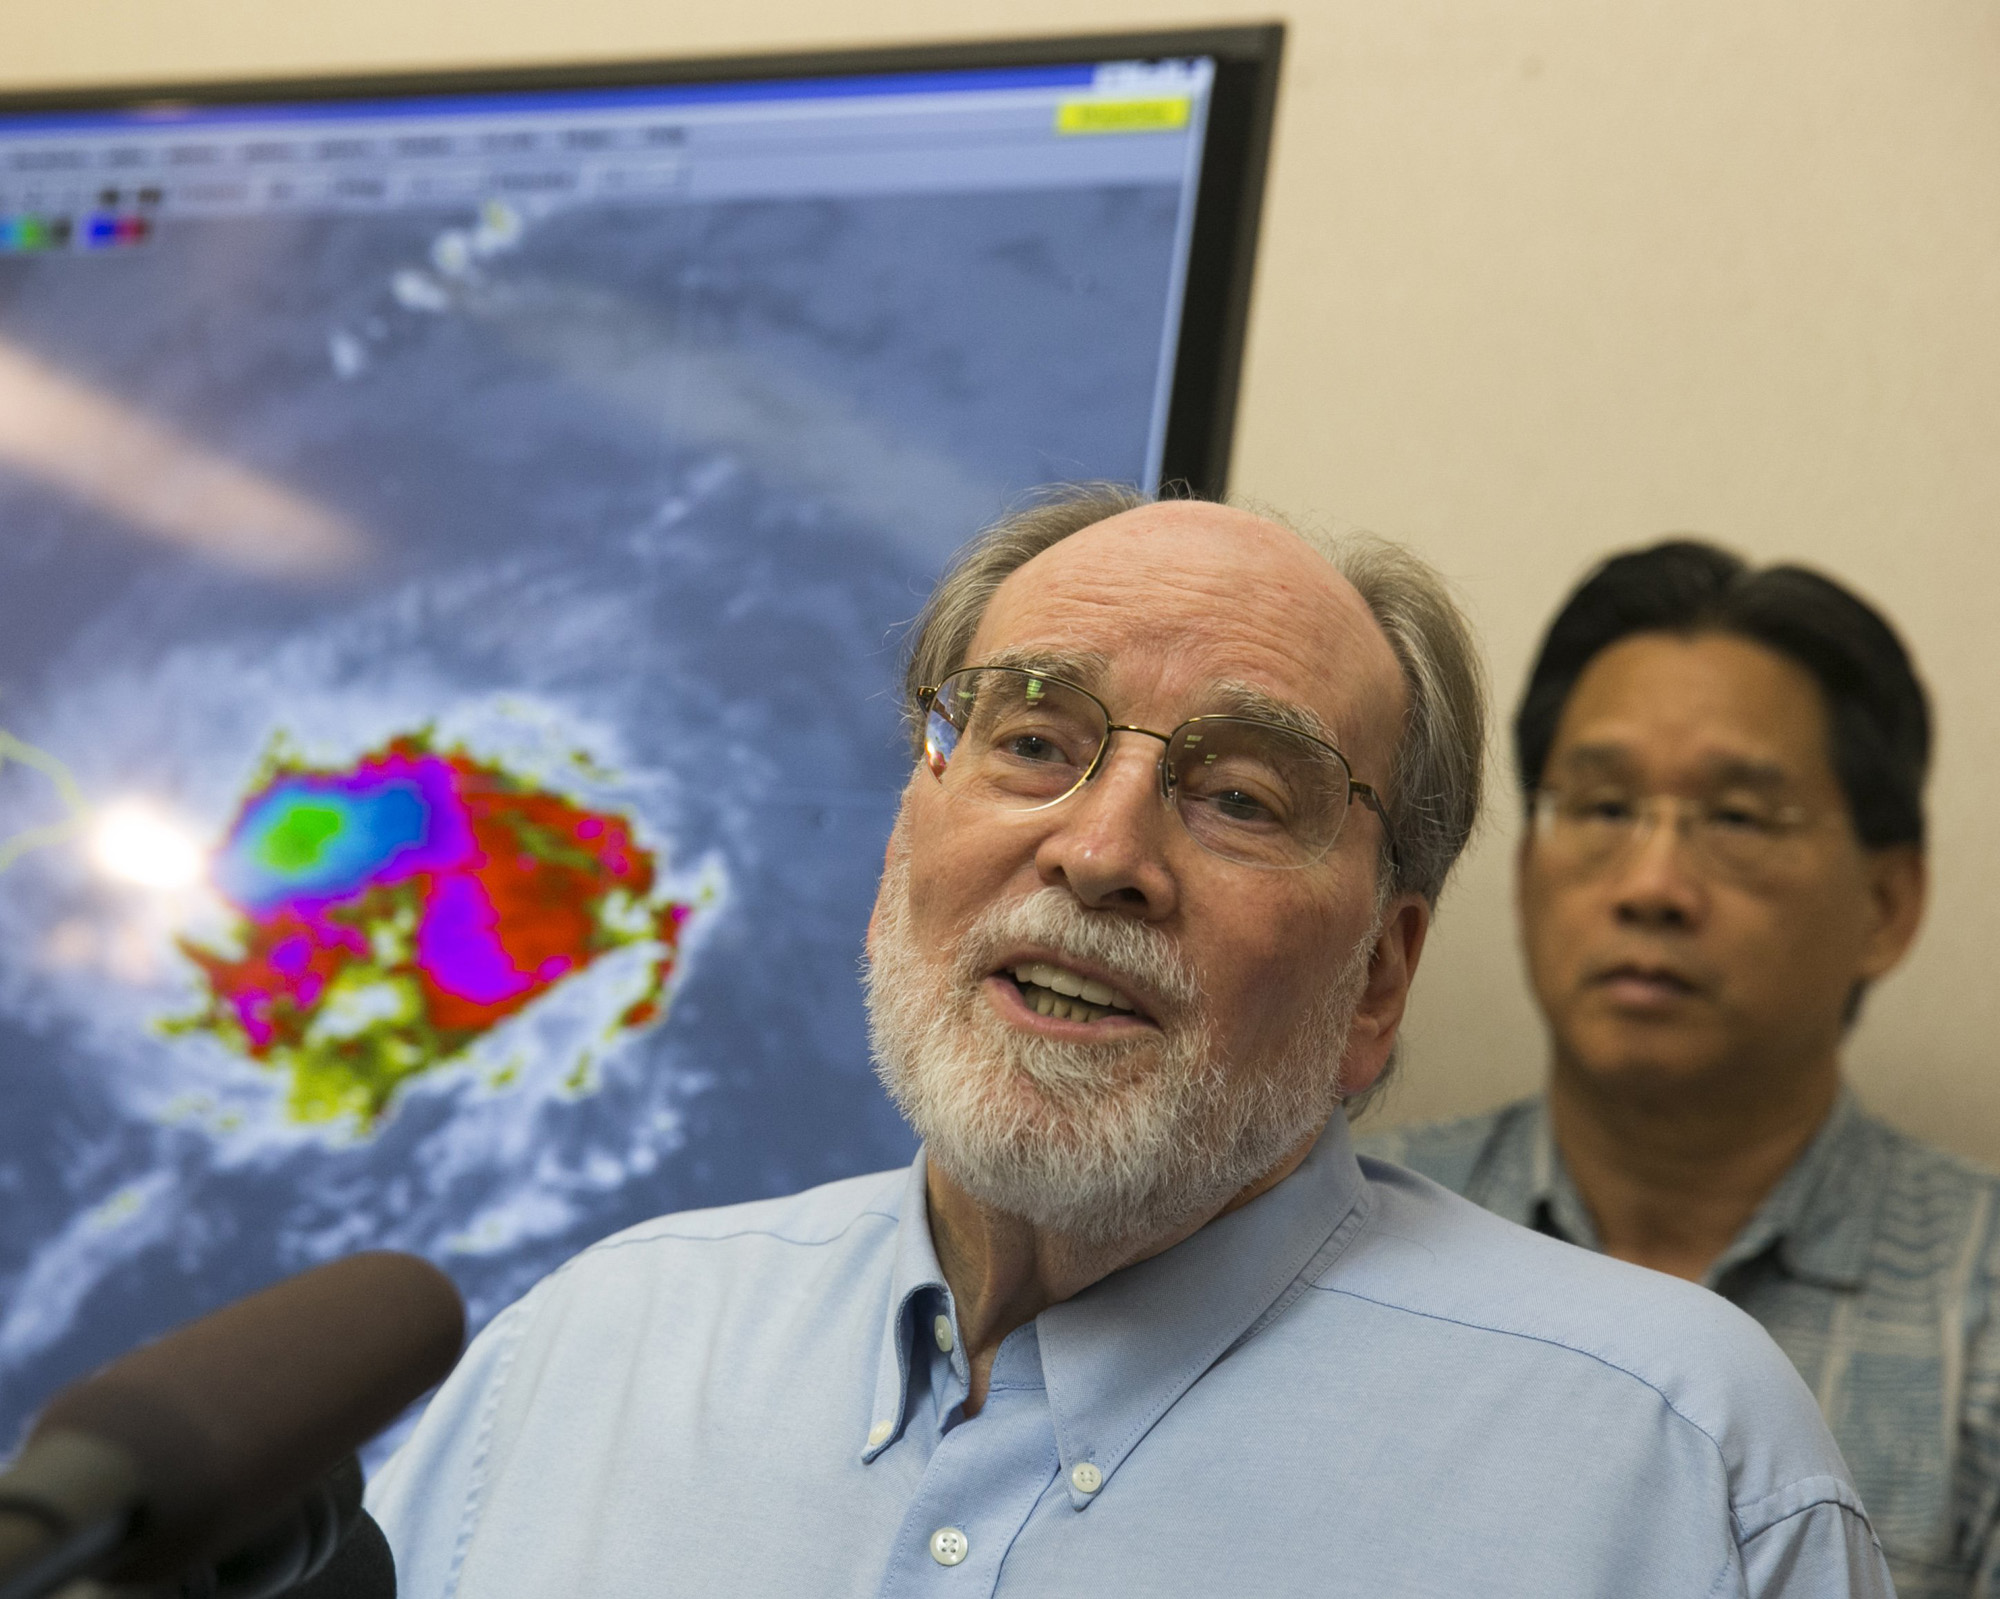 Hawaii Gov. Neil Abercrombie, center, speaks at the National Weather Service office on the campus of the University of Hawaii, Aug. 7, 2014, in Honolulu.